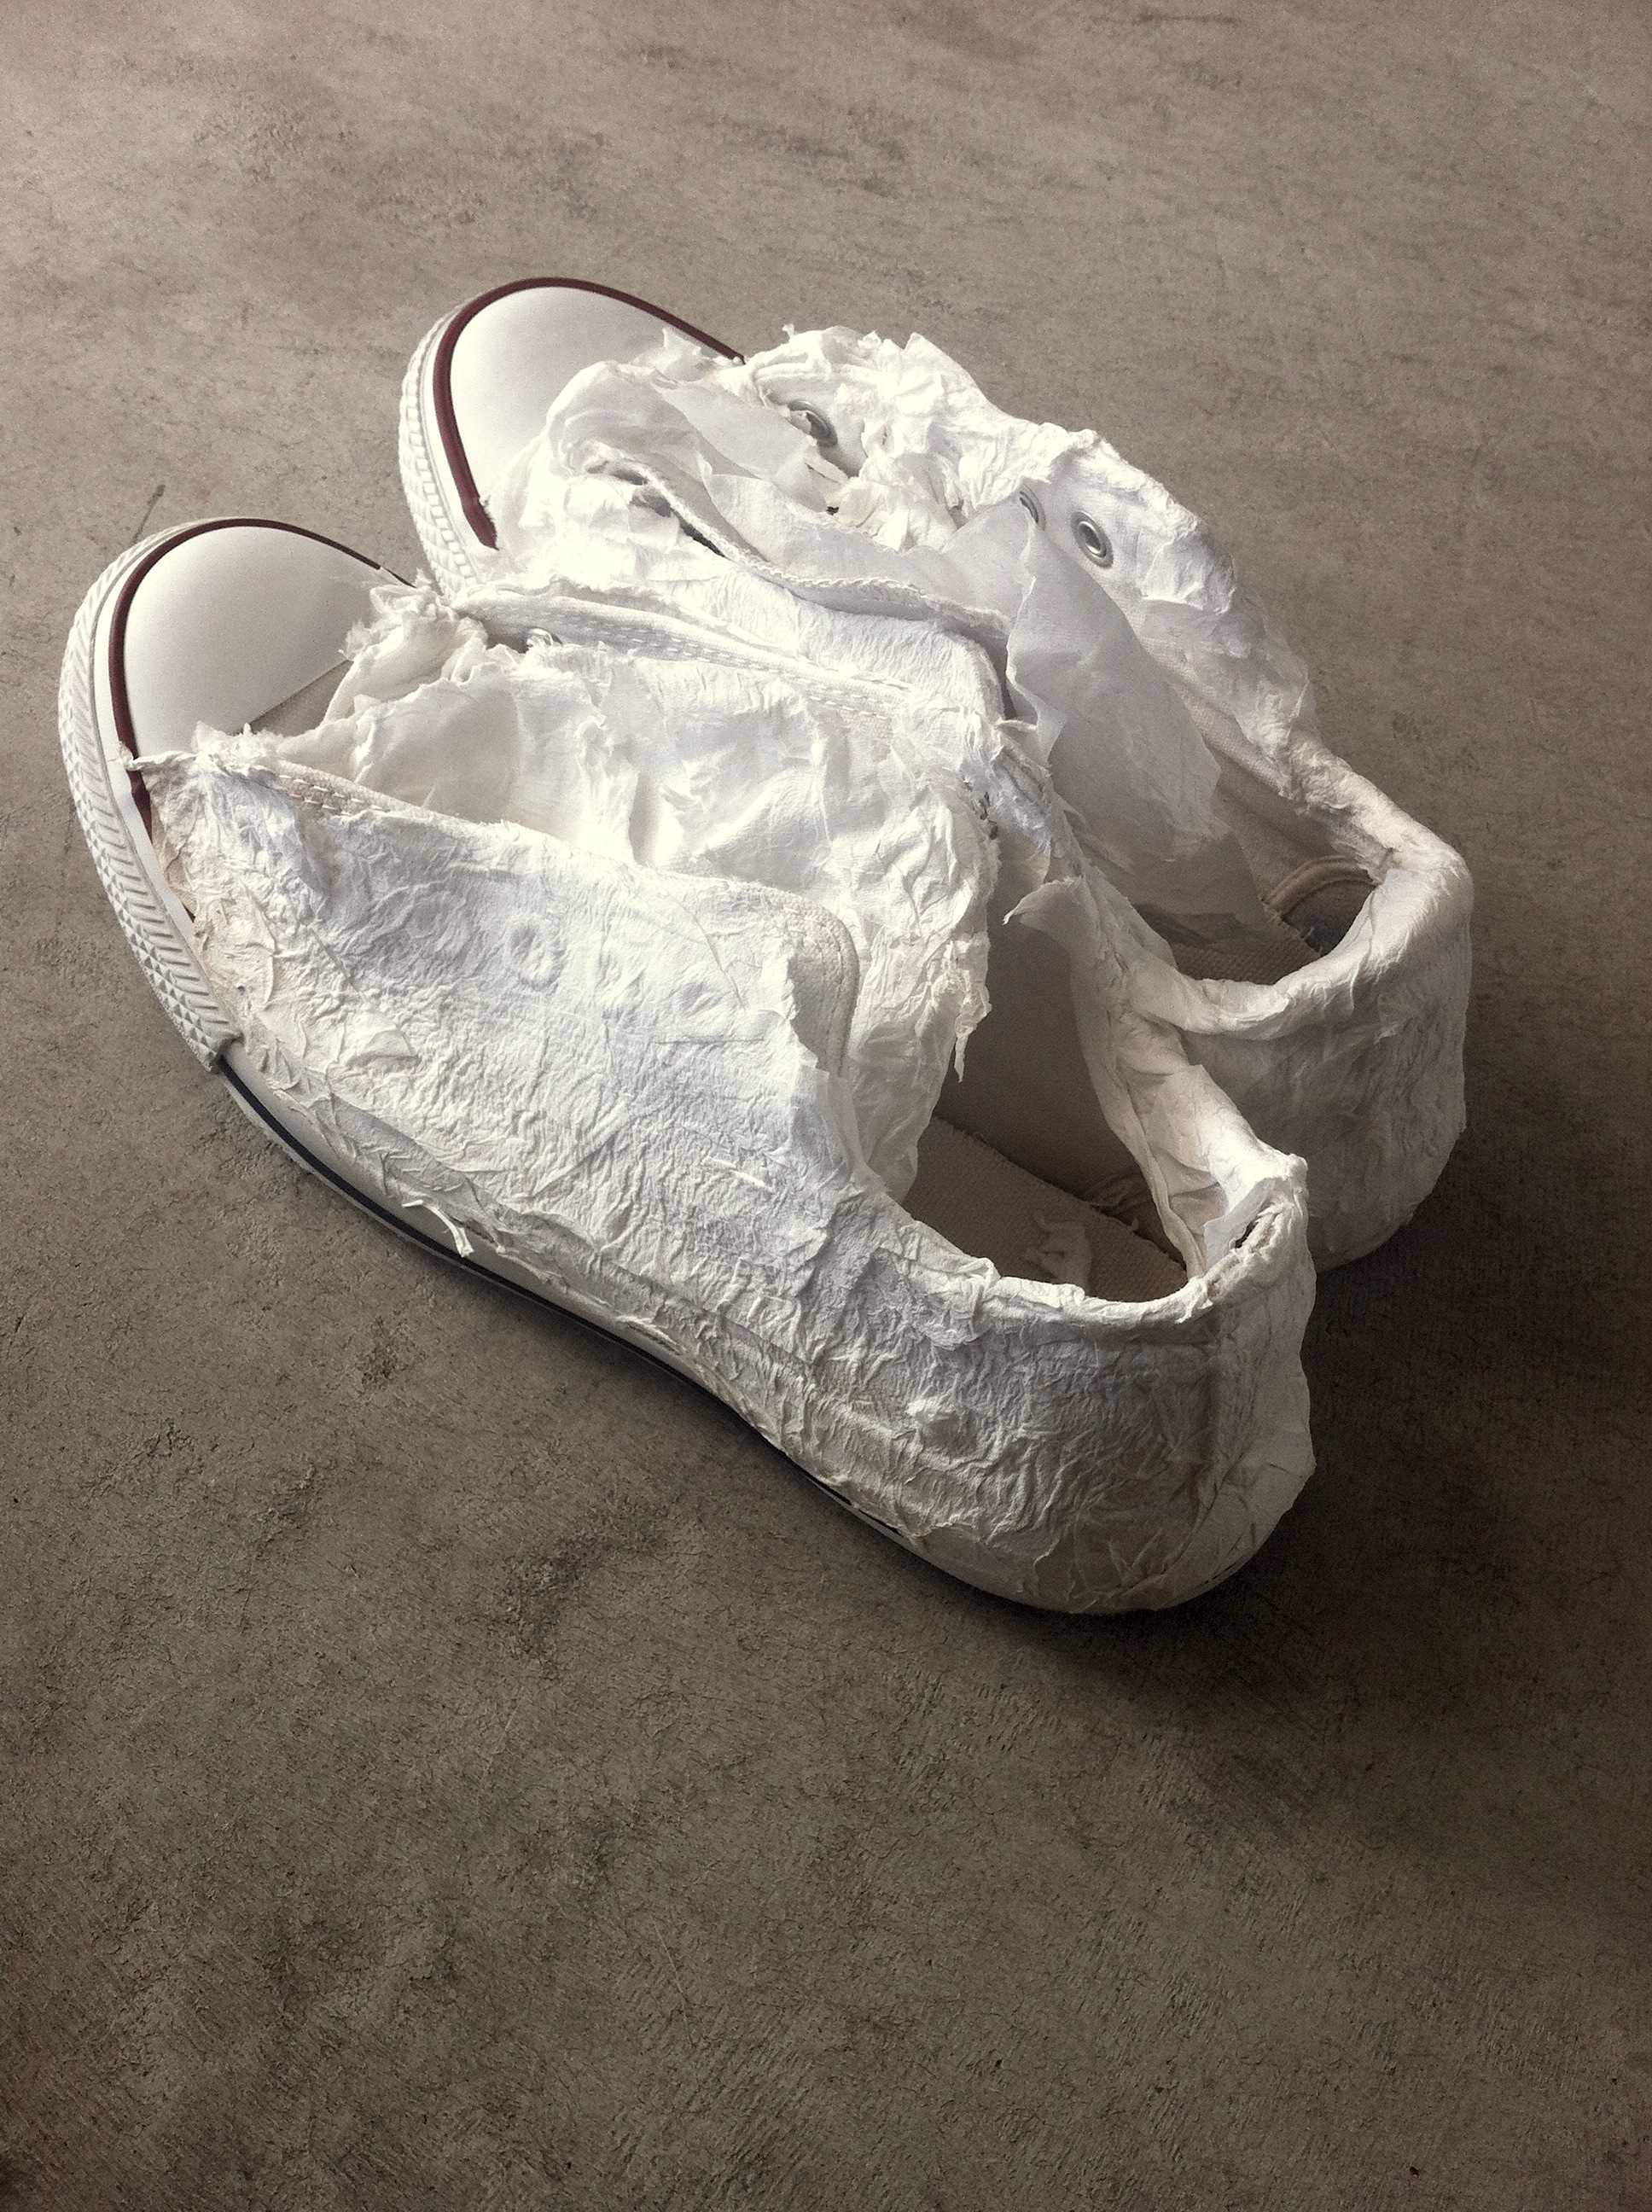 How To Get Rid Of Stains On White Shoes